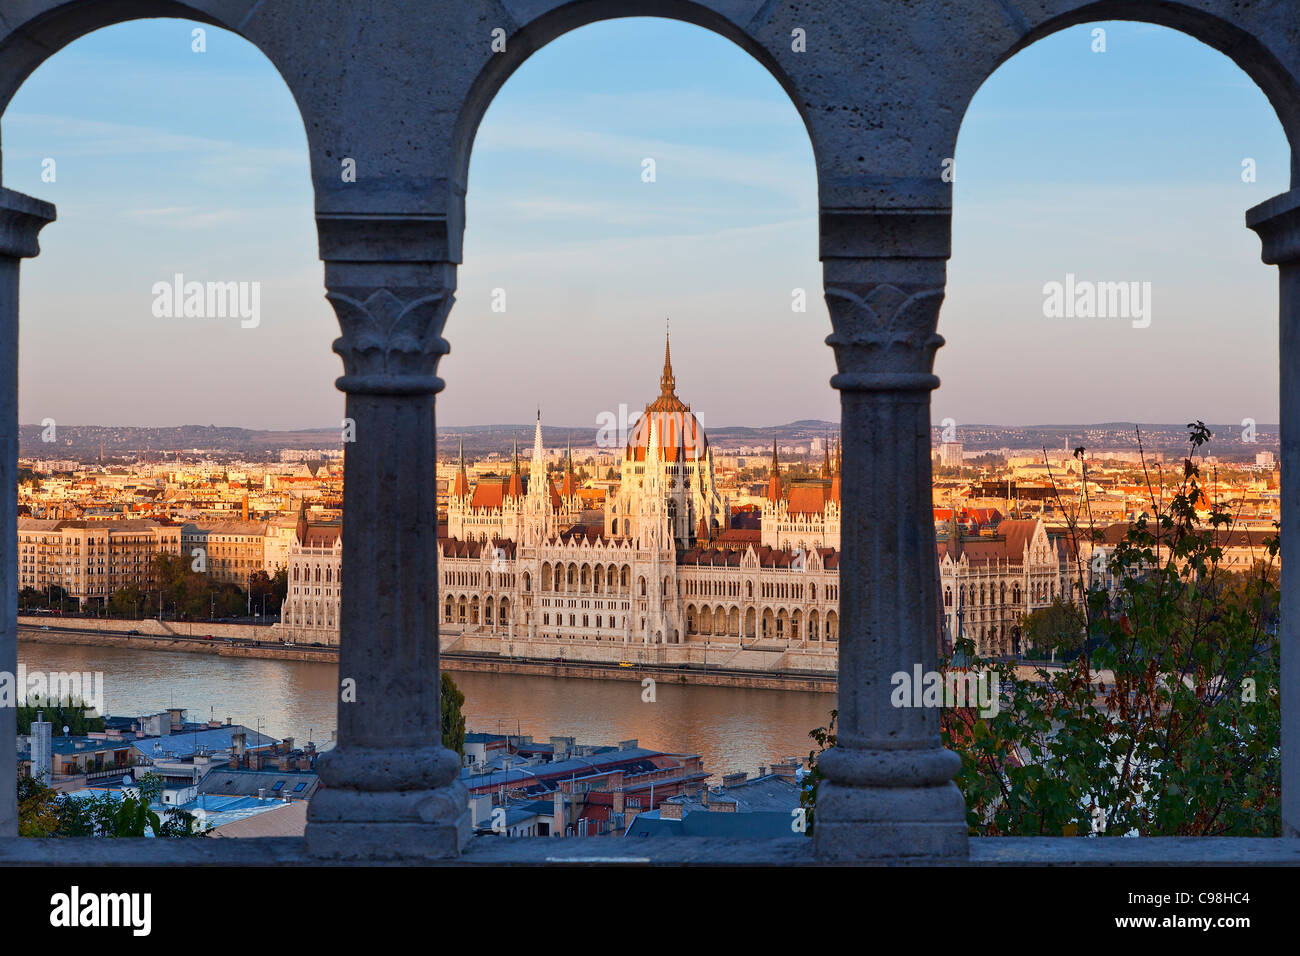 Hungarian Parliament Building view from Fishermen's Bastion - Stock Image